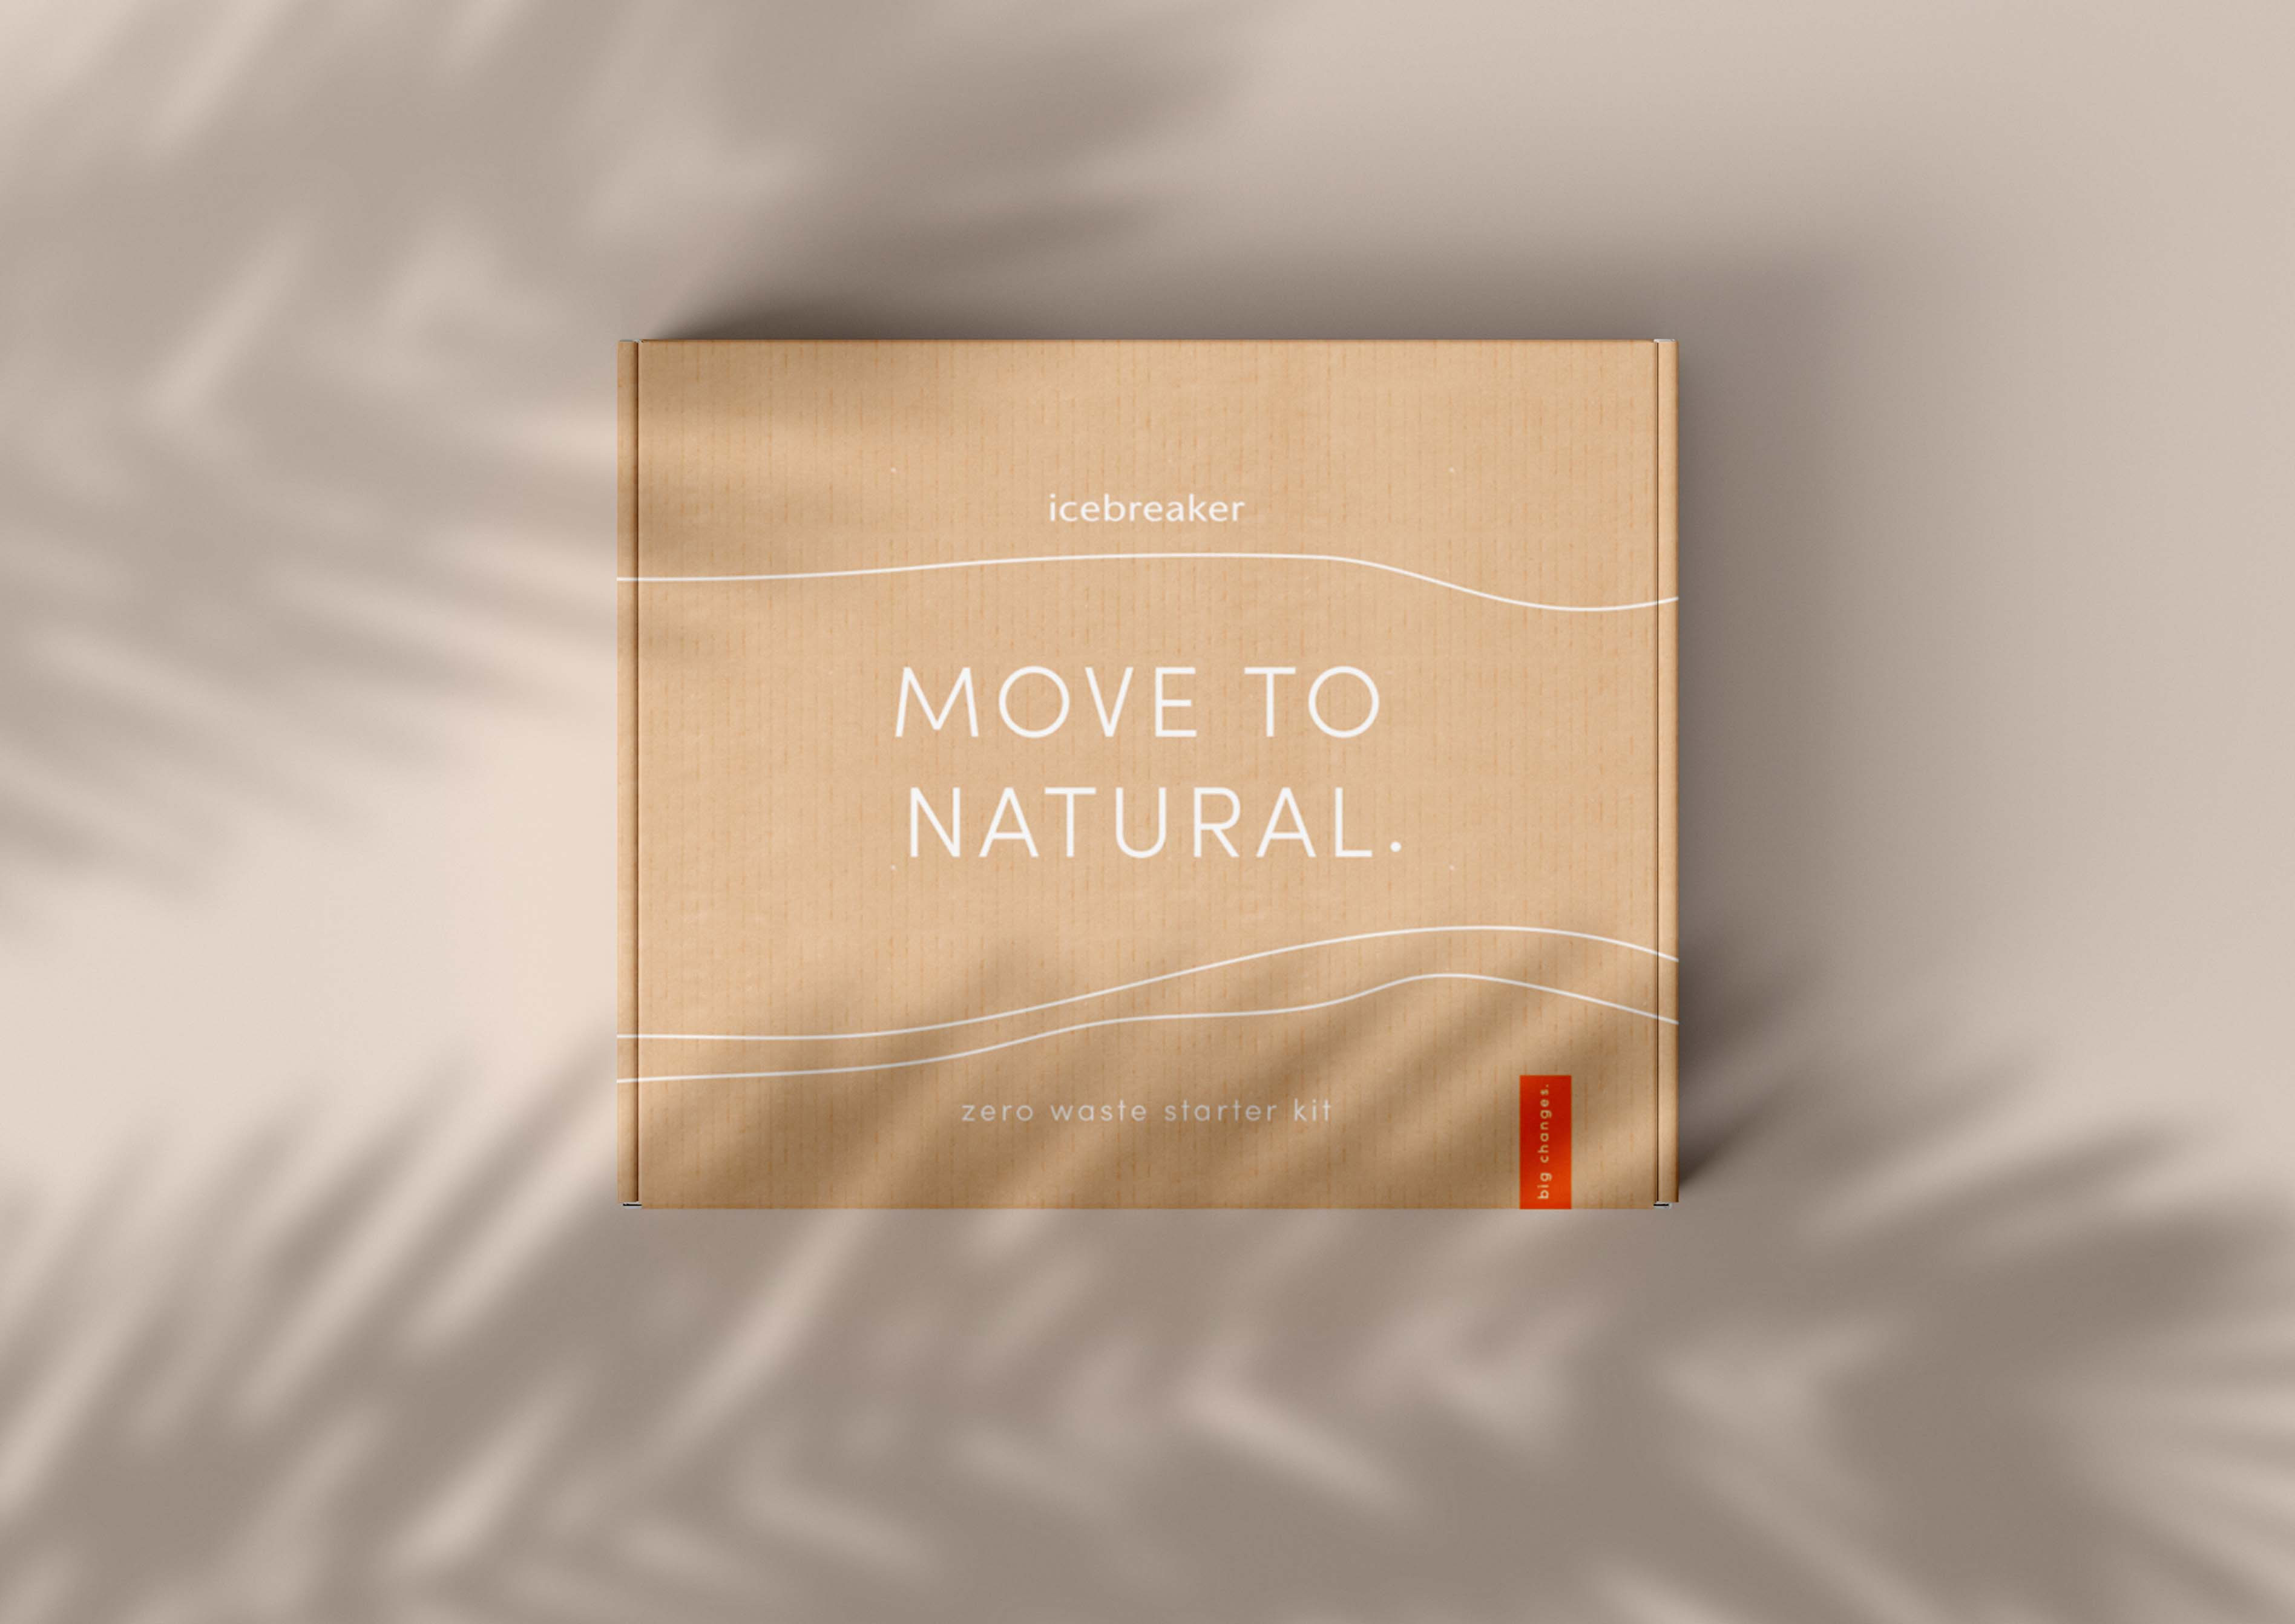 icebreaker – Move to Natural